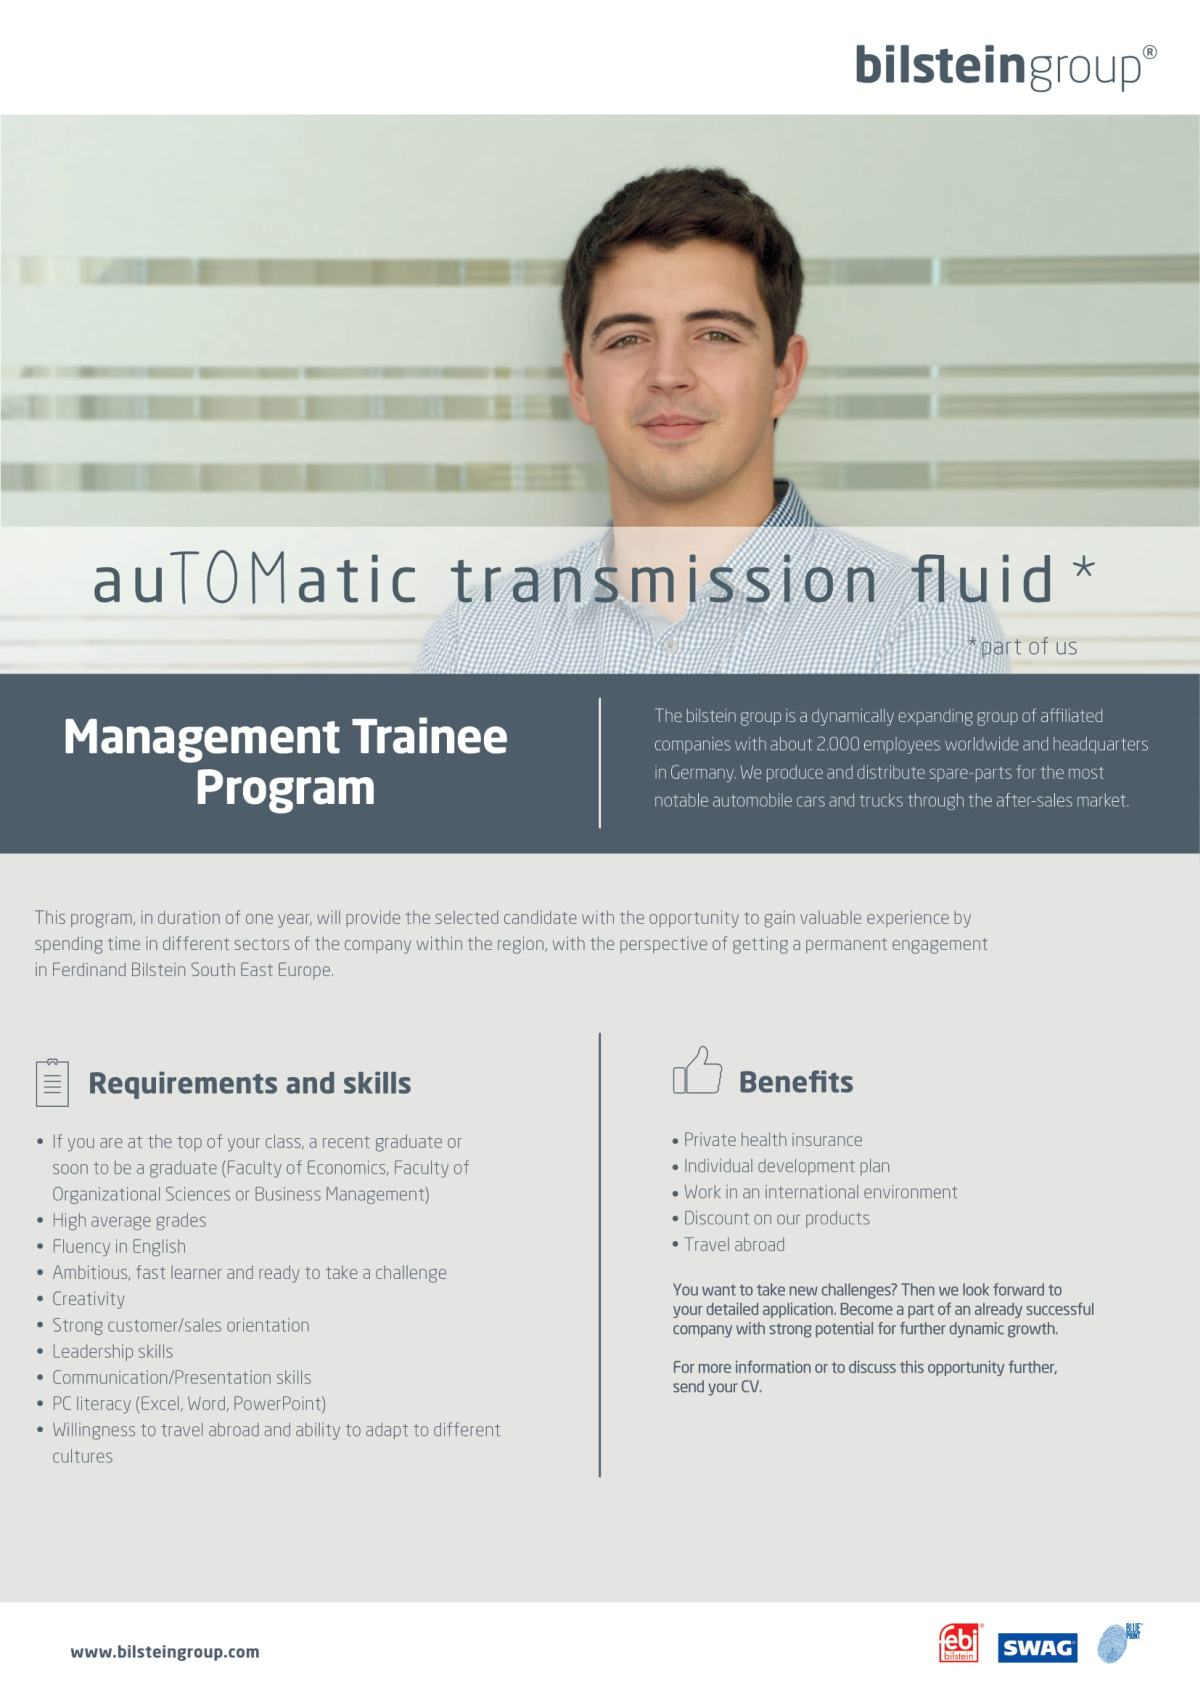 Bilstein - Management Trainee